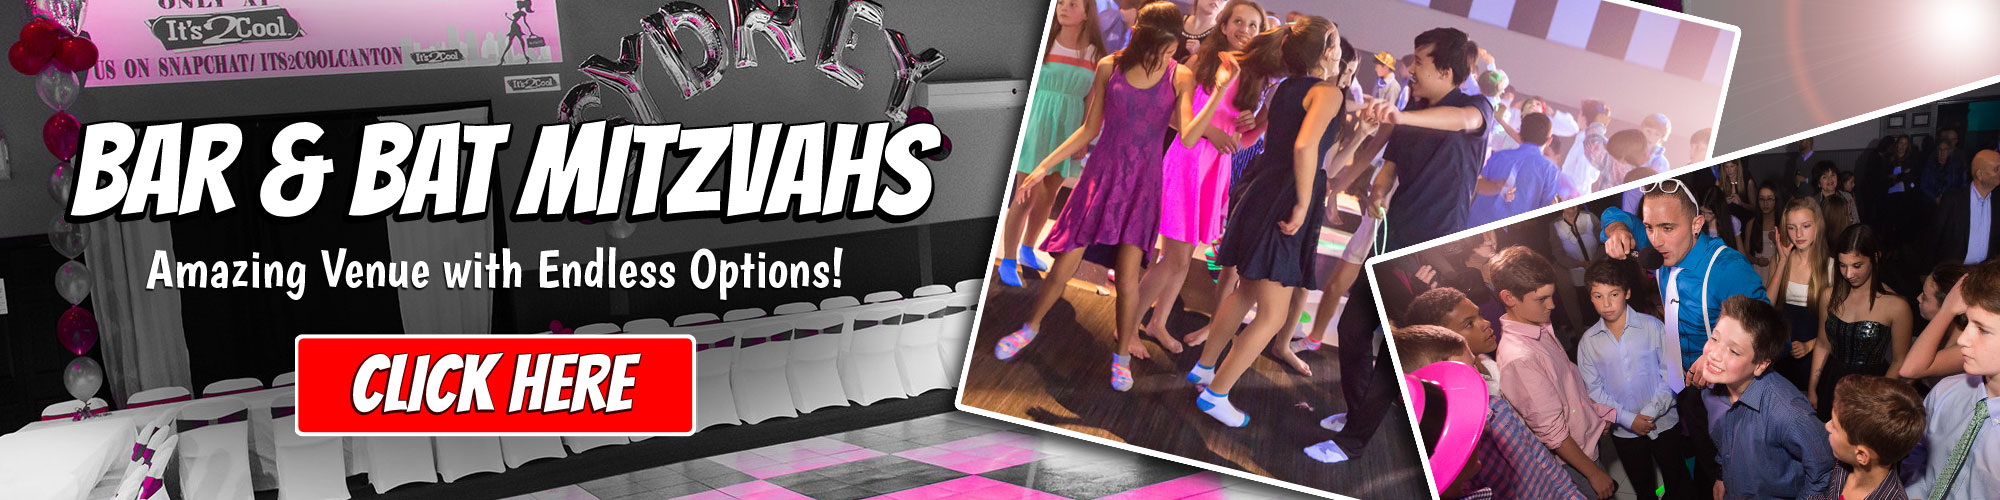 Bar & Bat Mitzvah Parties